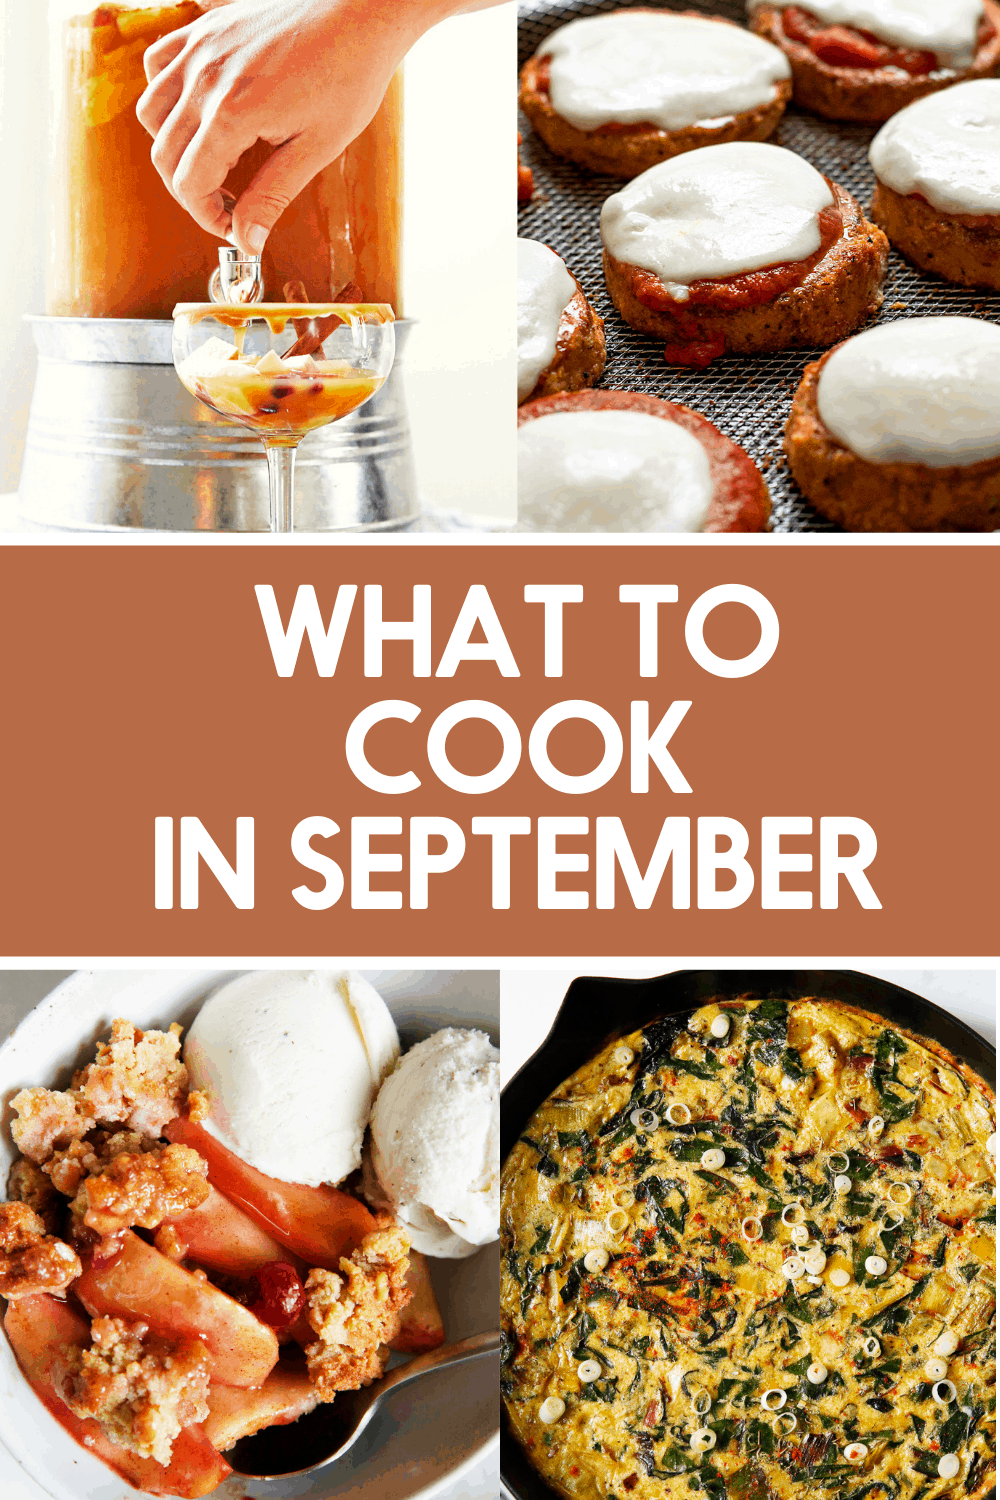 Recipes ideas to cook in September